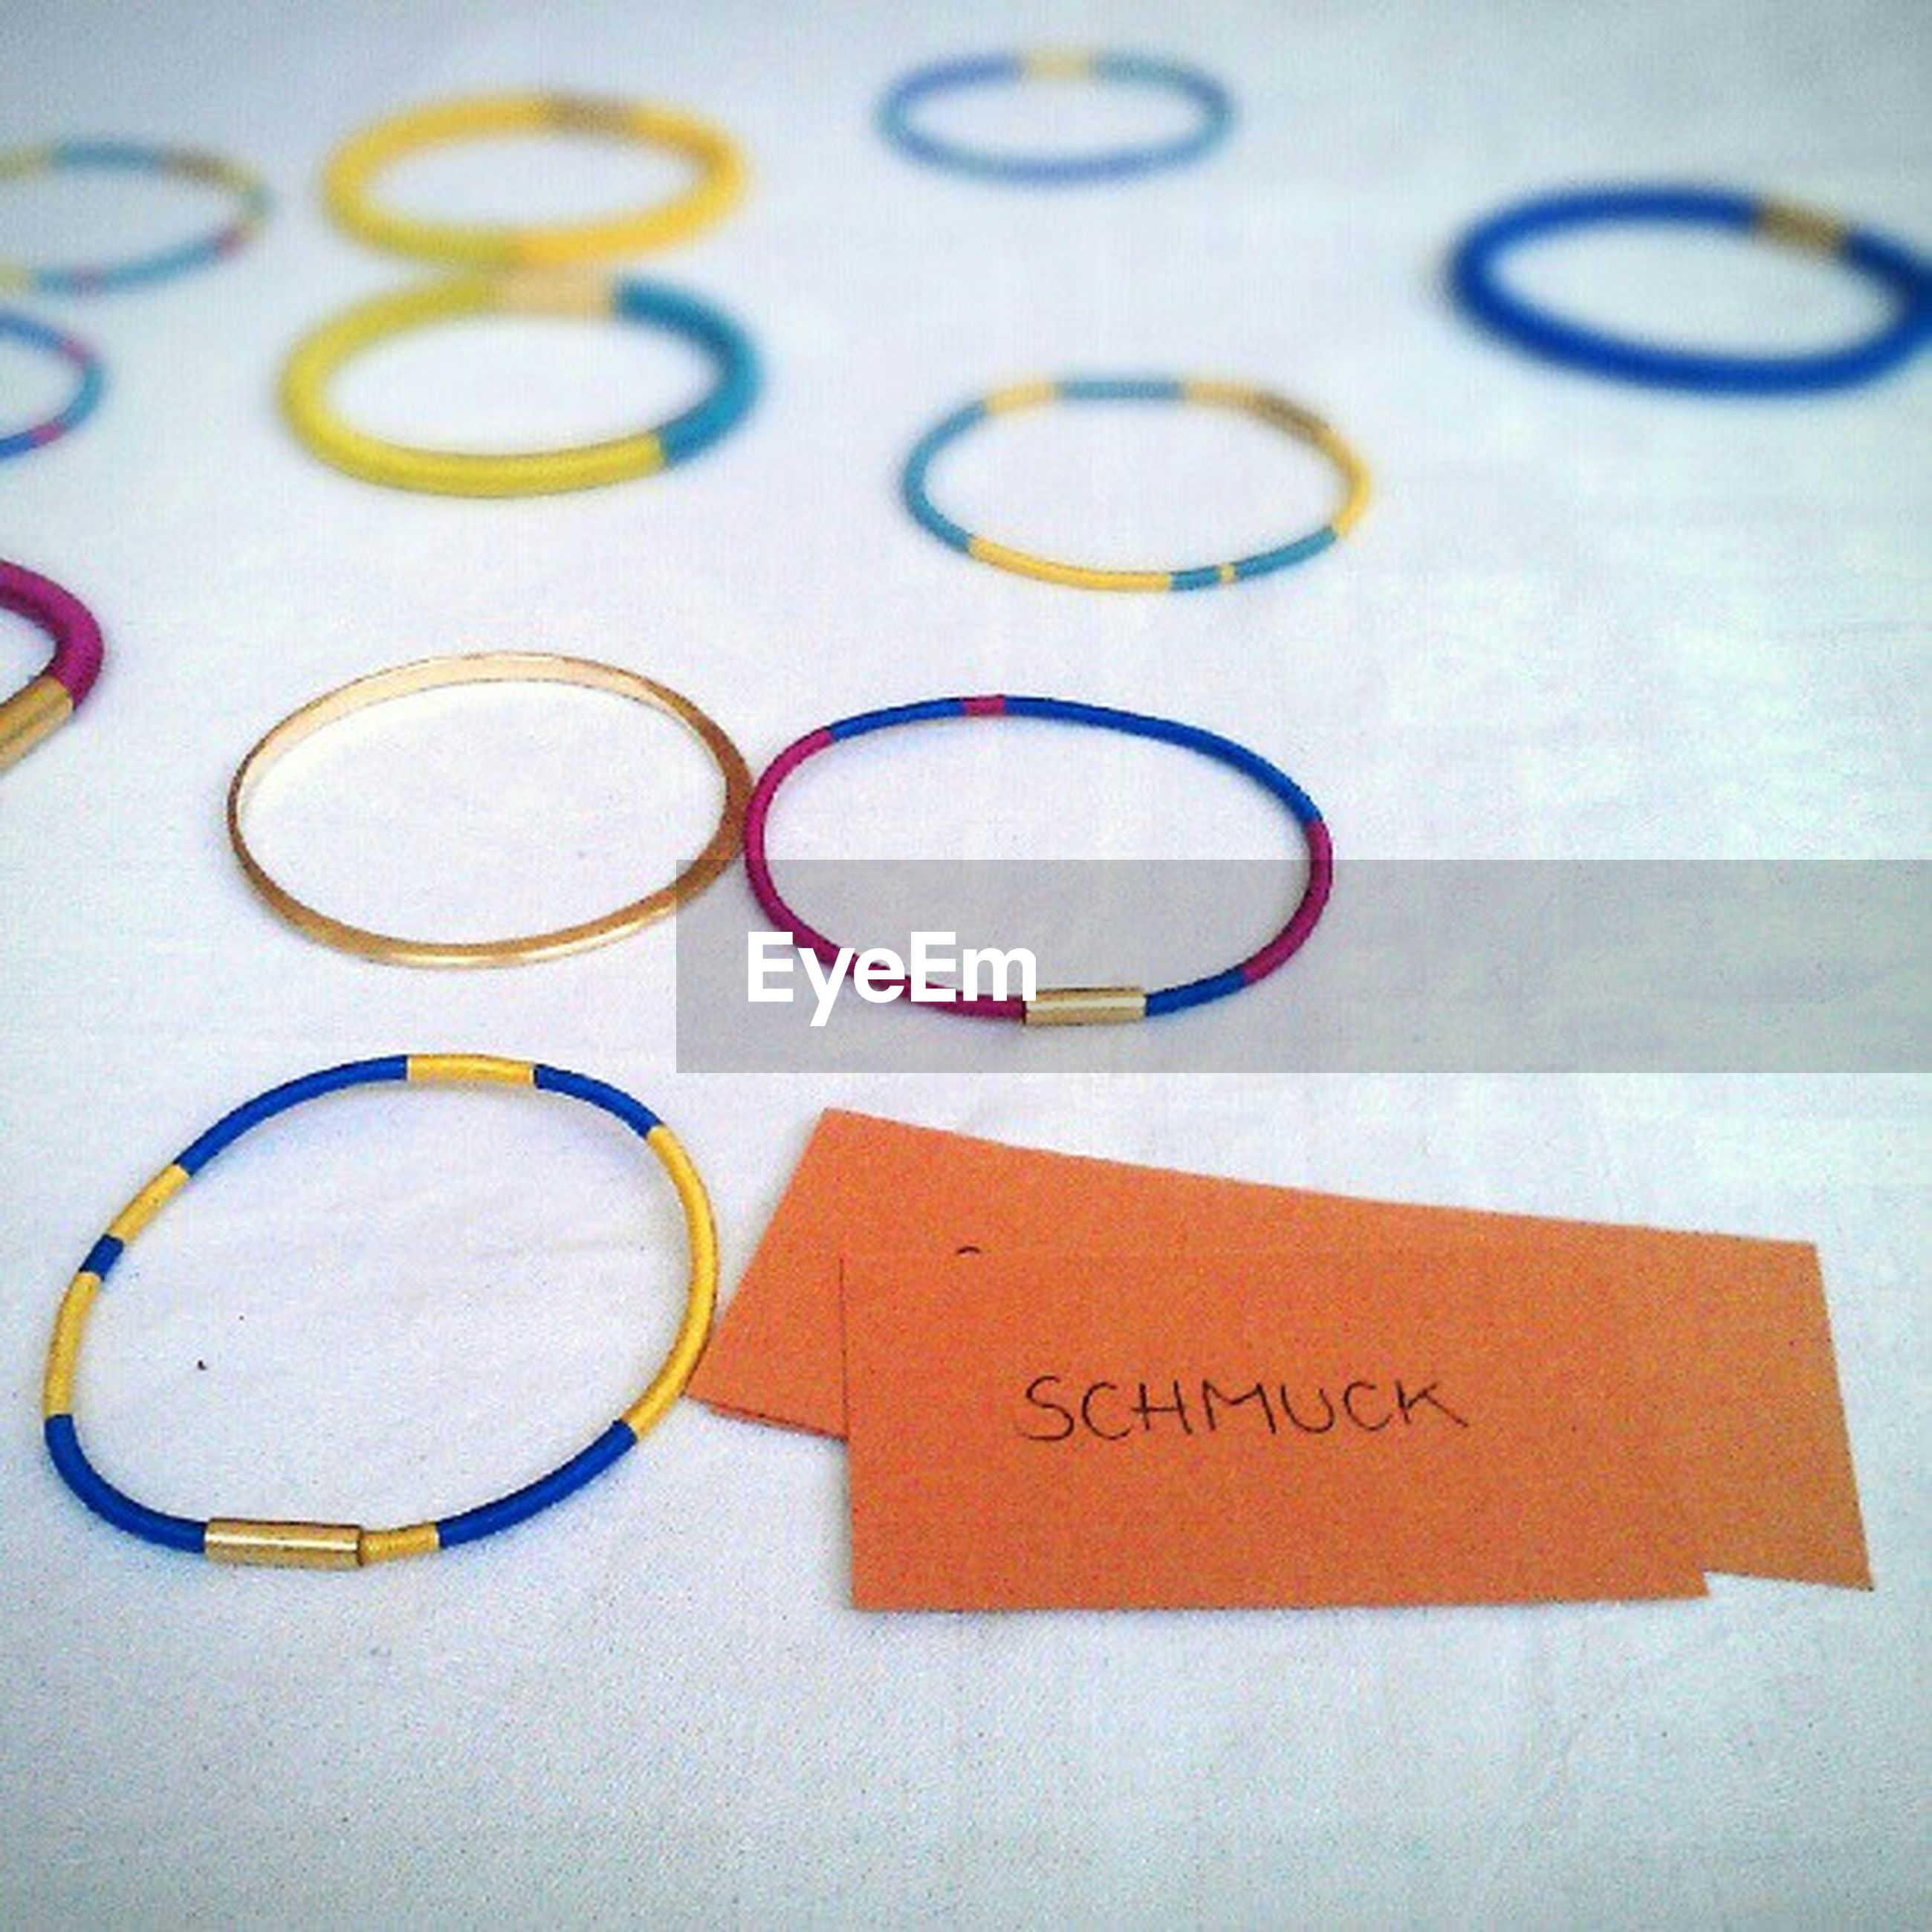 indoors, text, communication, close-up, western script, still life, table, high angle view, paper, studio shot, number, circle, white background, variation, creativity, multi colored, no people, selective focus, ideas, capital letter